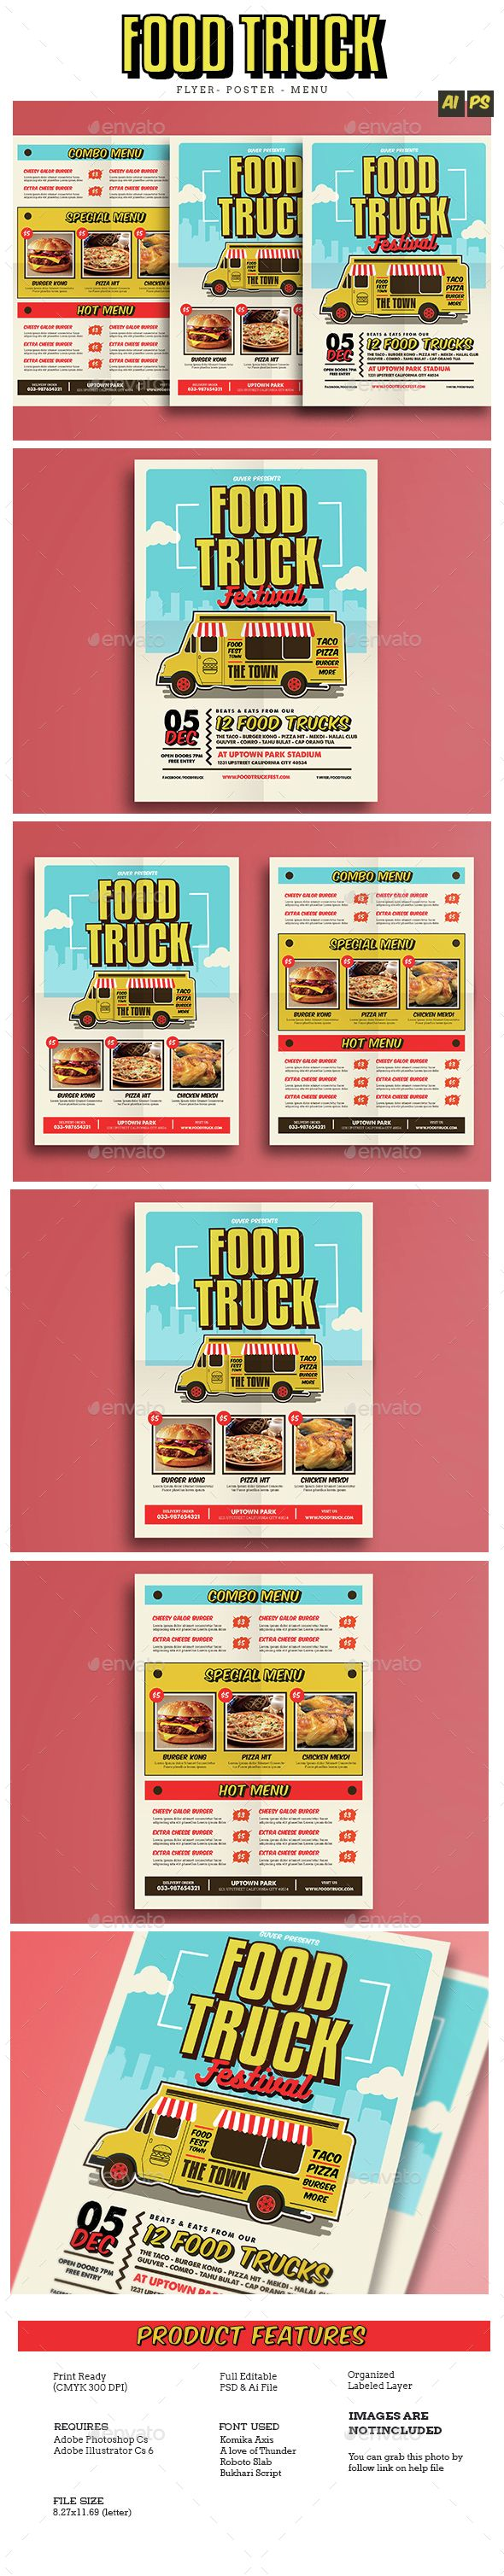 Pop Art Food Truck Flyer / Poster / Menu Template PSD, Vector AI. Download here: http://graphicriver.net/item/pop-art-food-truck-flyerpostermenu/14857358?ref=ksioks